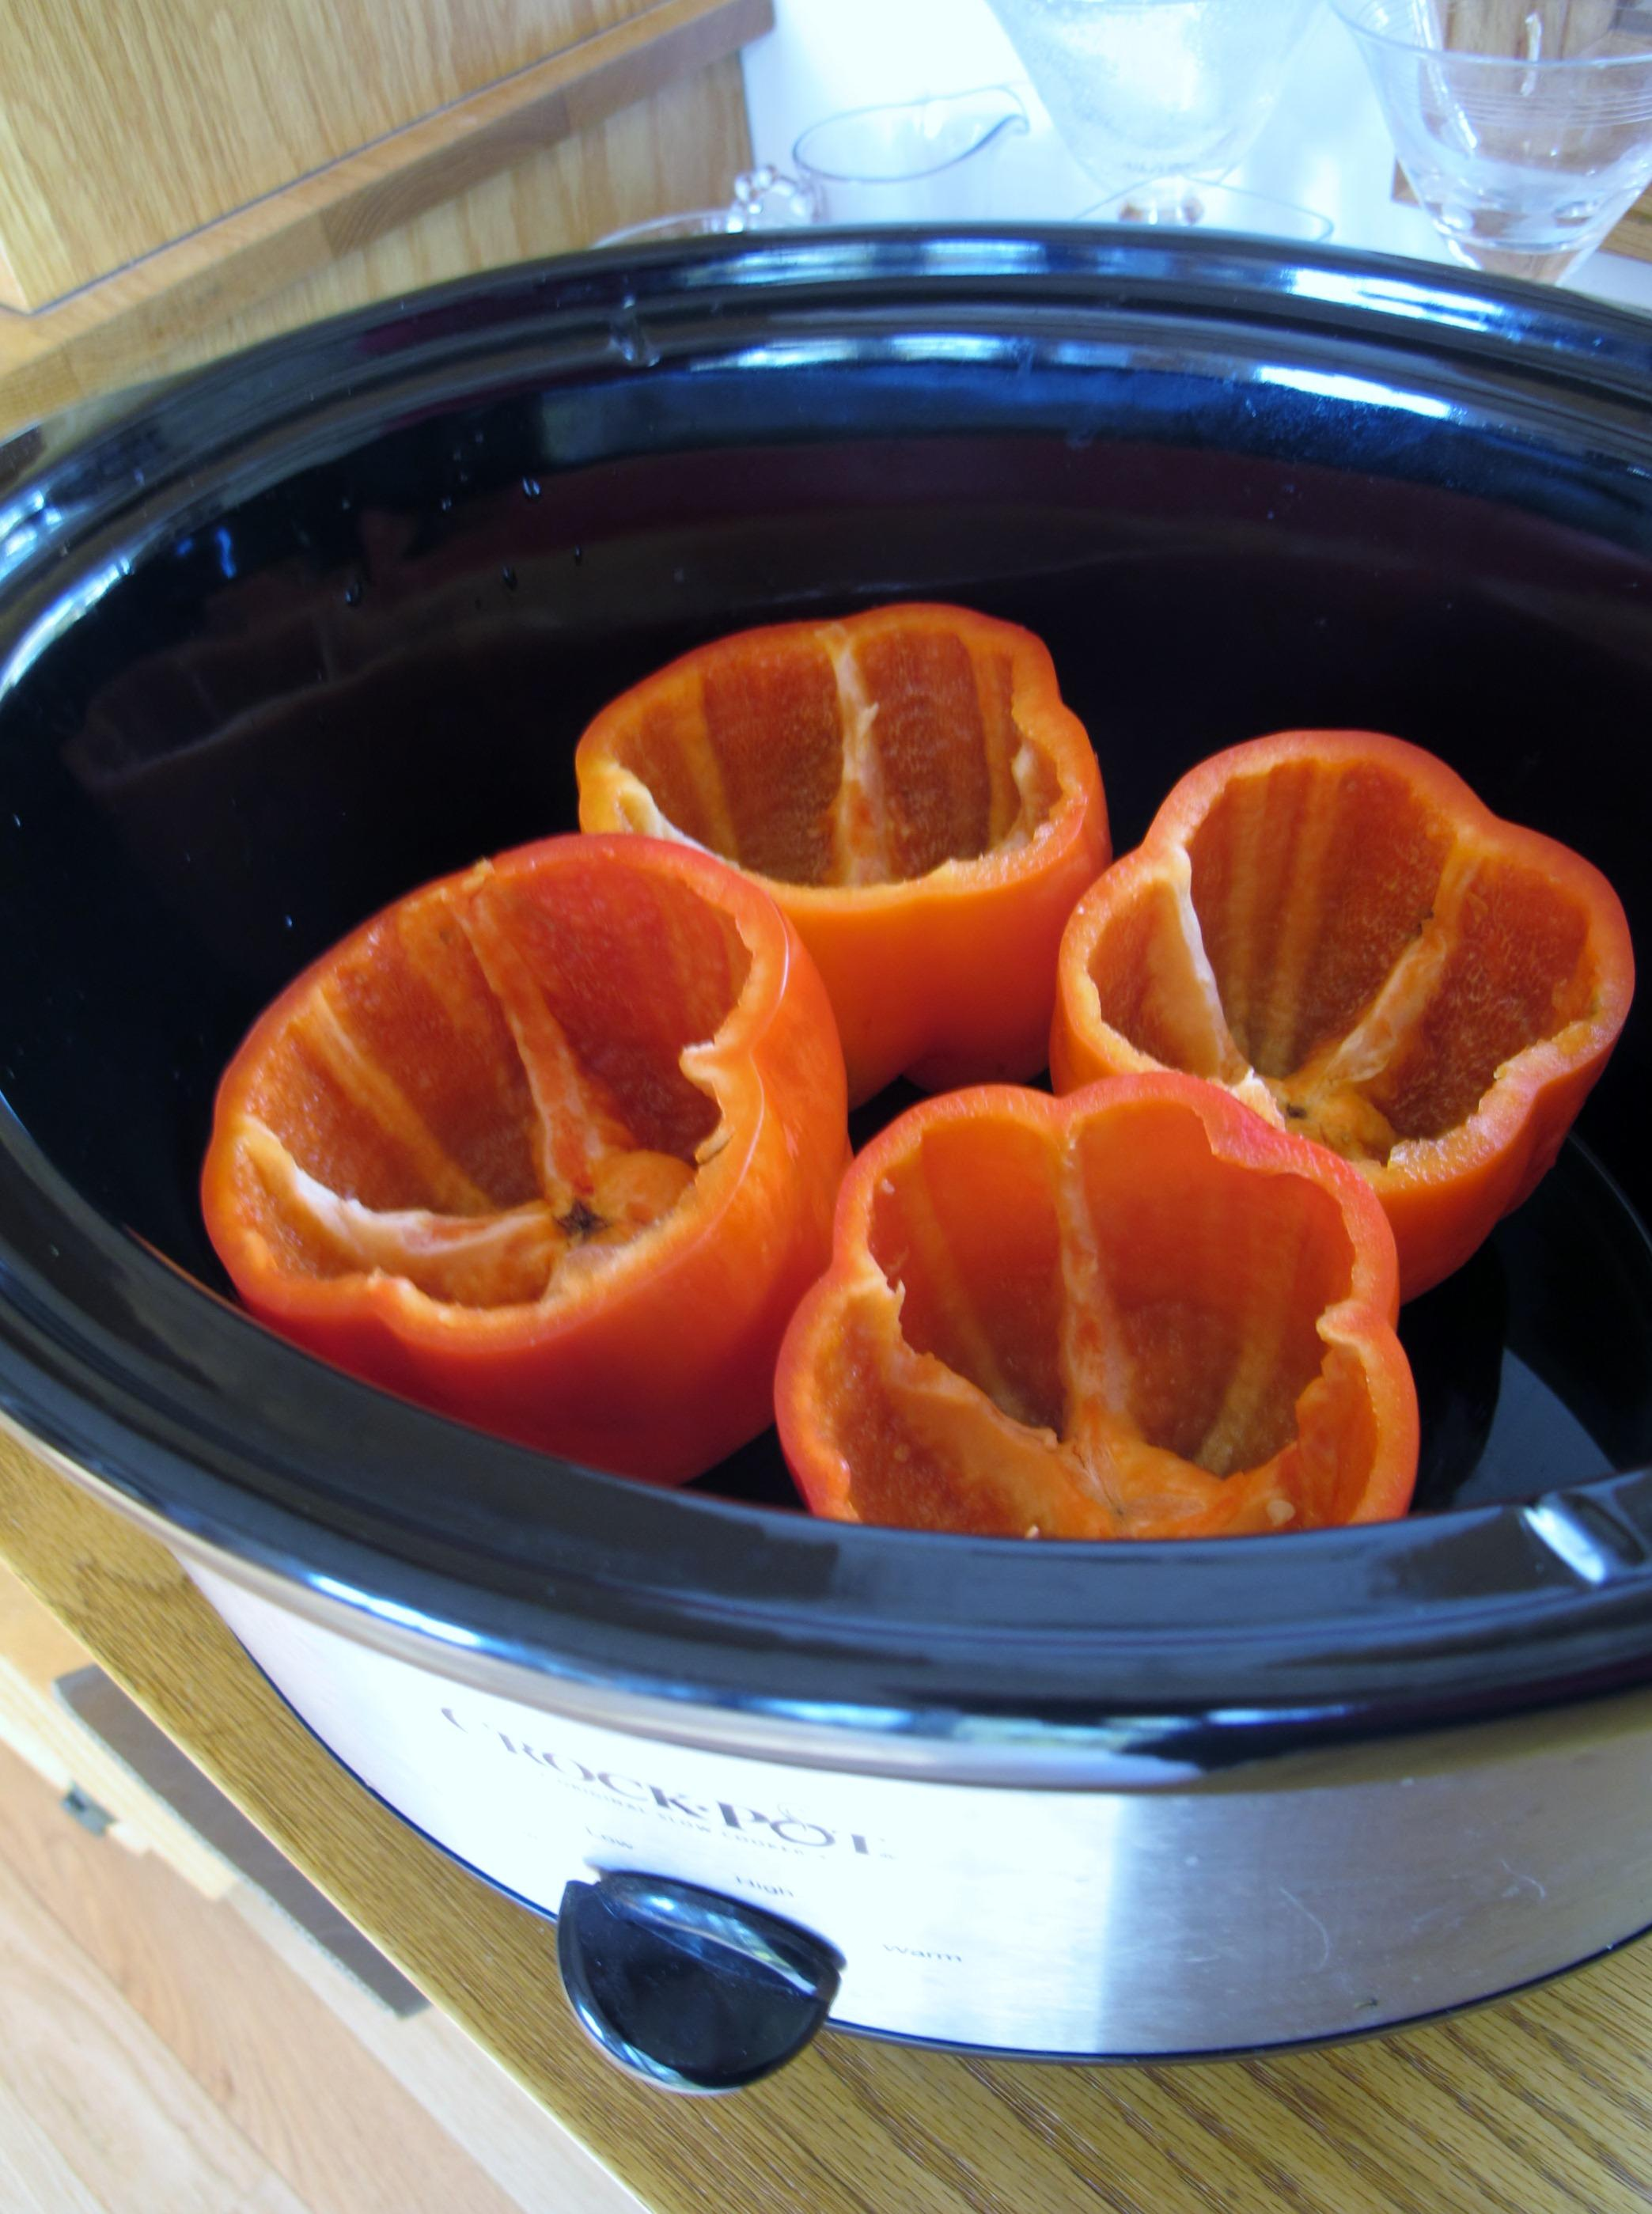 Red bell eppers in crock pot ready for stuffing